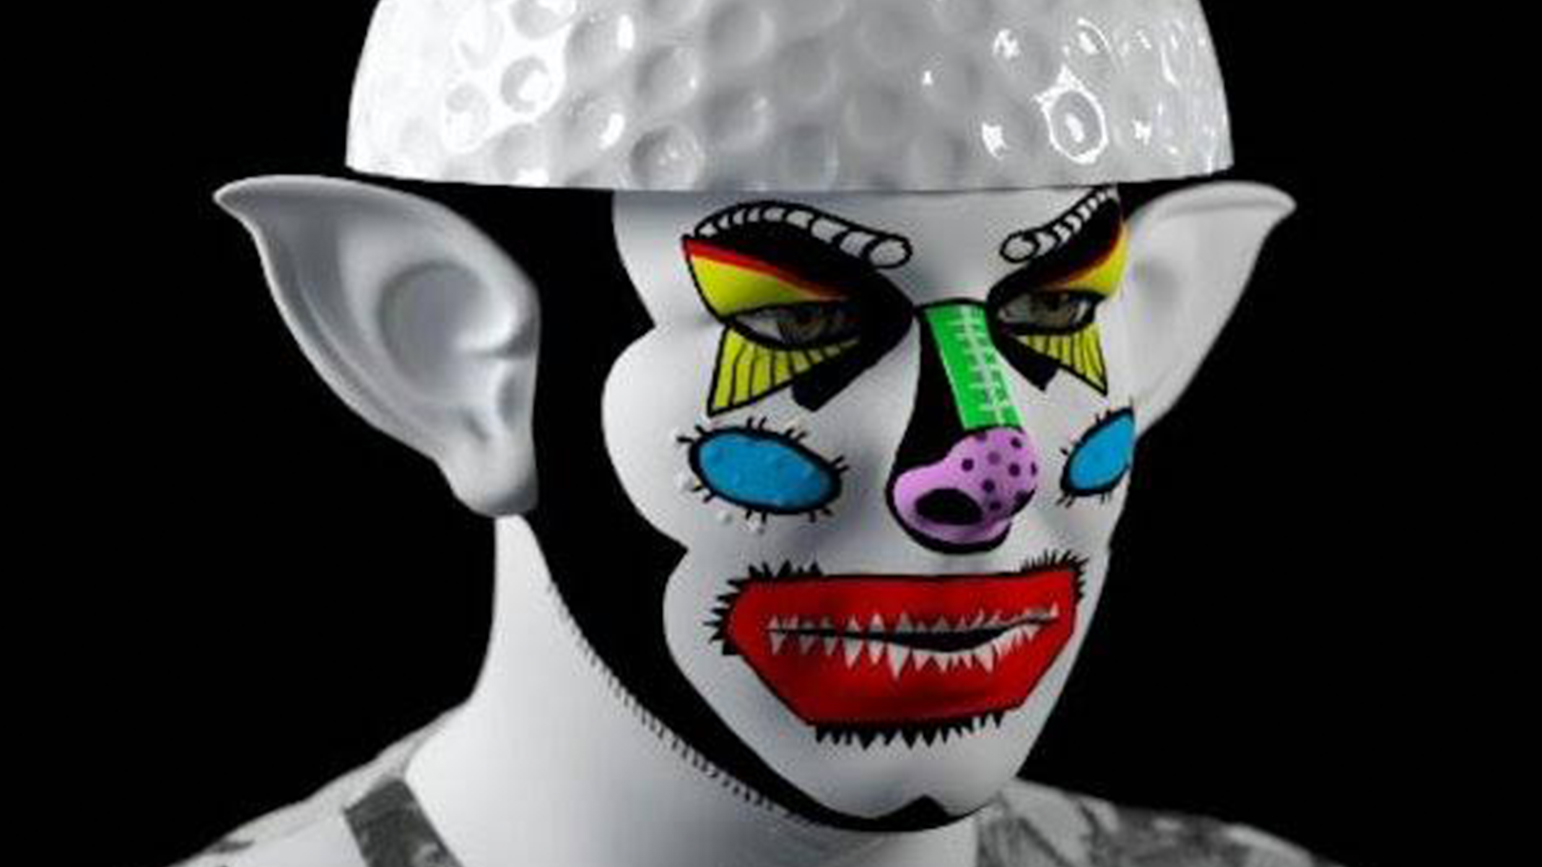 Digital image of a person with garish clown makeup